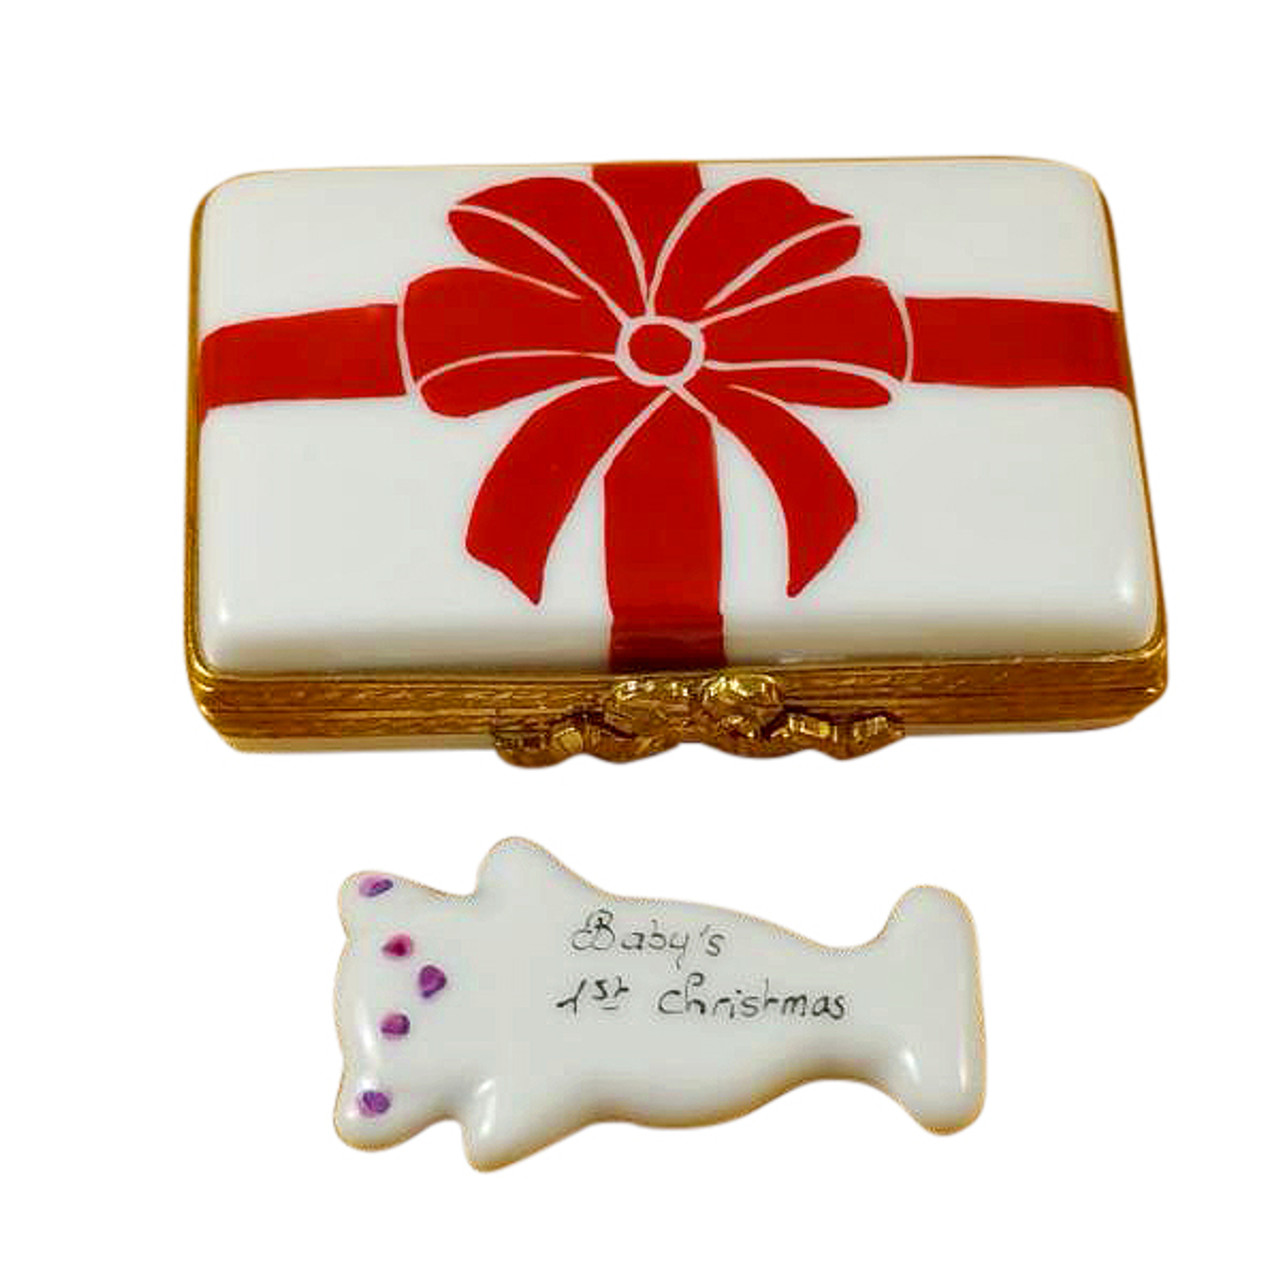 Rochard Gift Box With Red Bow - Baby'S 1St Christmas - Pink Limoges Box RX119-H